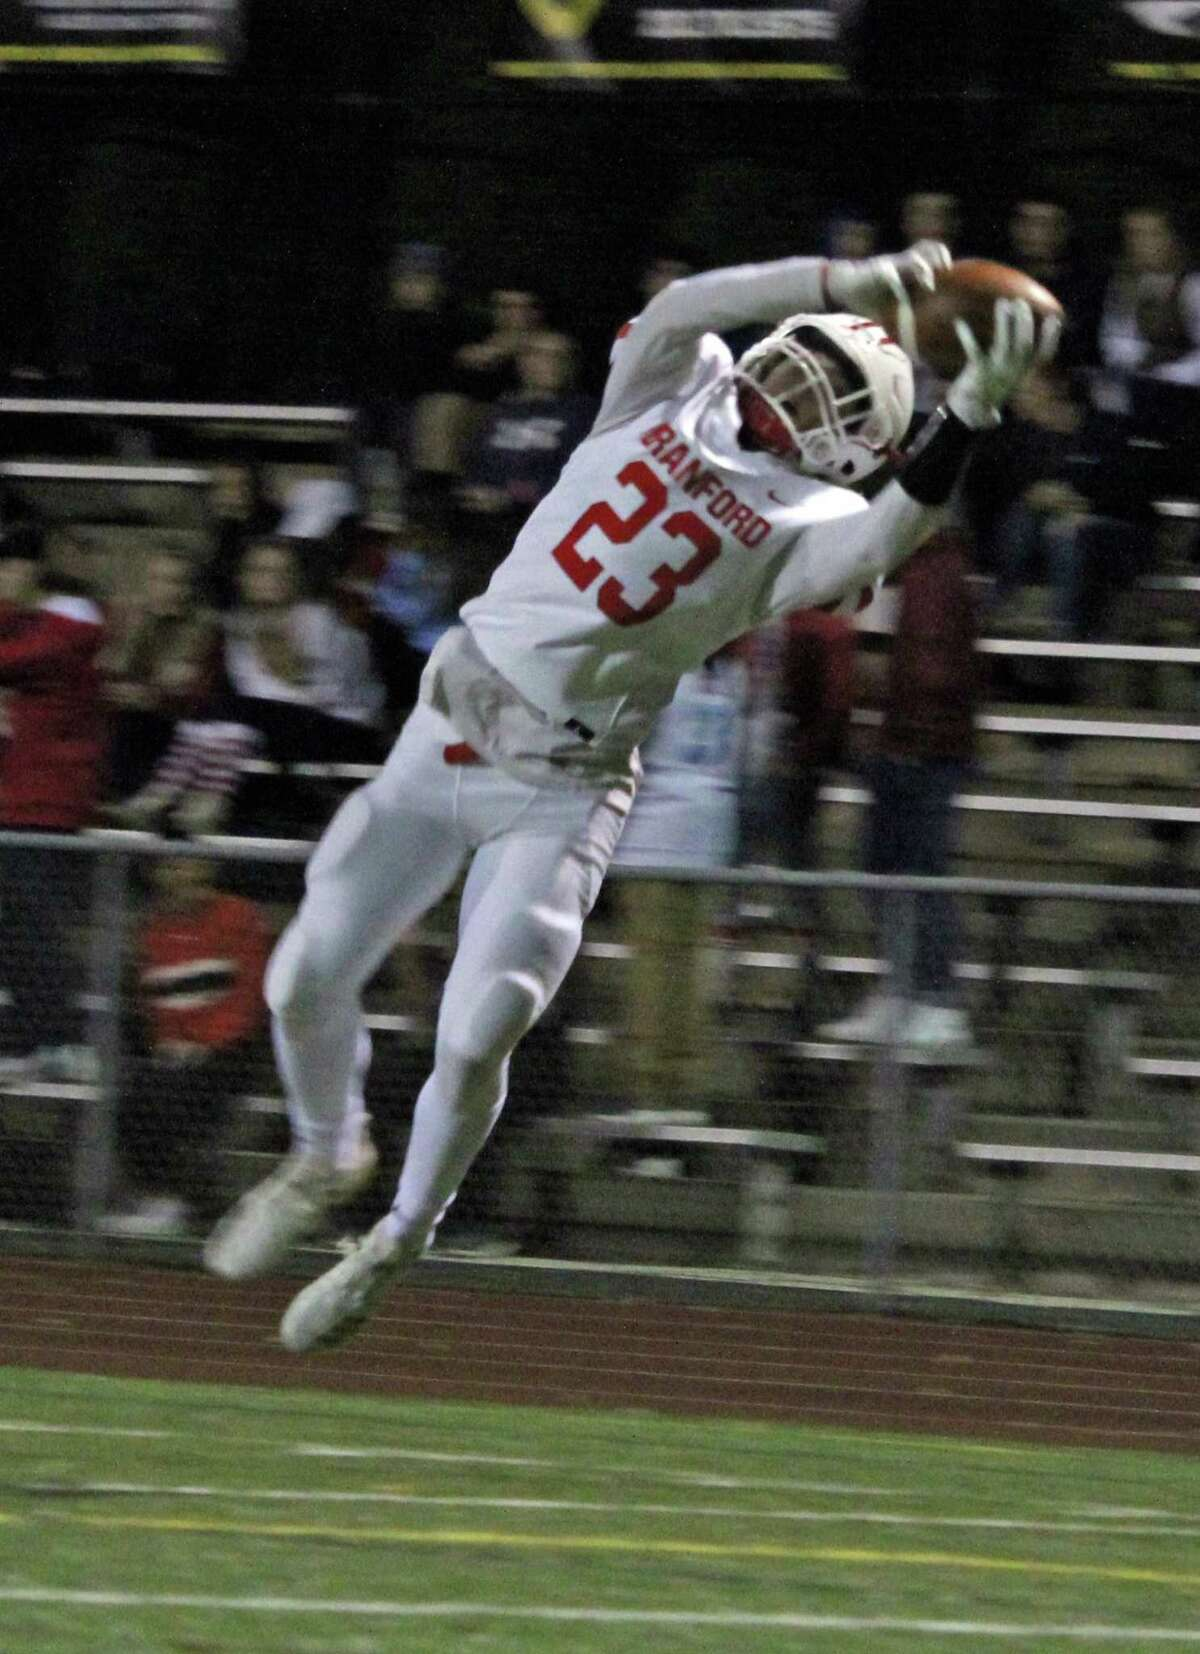 Branford's Robert Lionetti lays out for a catch during an SCC matchup between Law and Branford on Friday, Oct. 19, 2018 at Jonathan Law High School in Milford, Conn. Law defeated Branford 35-6.